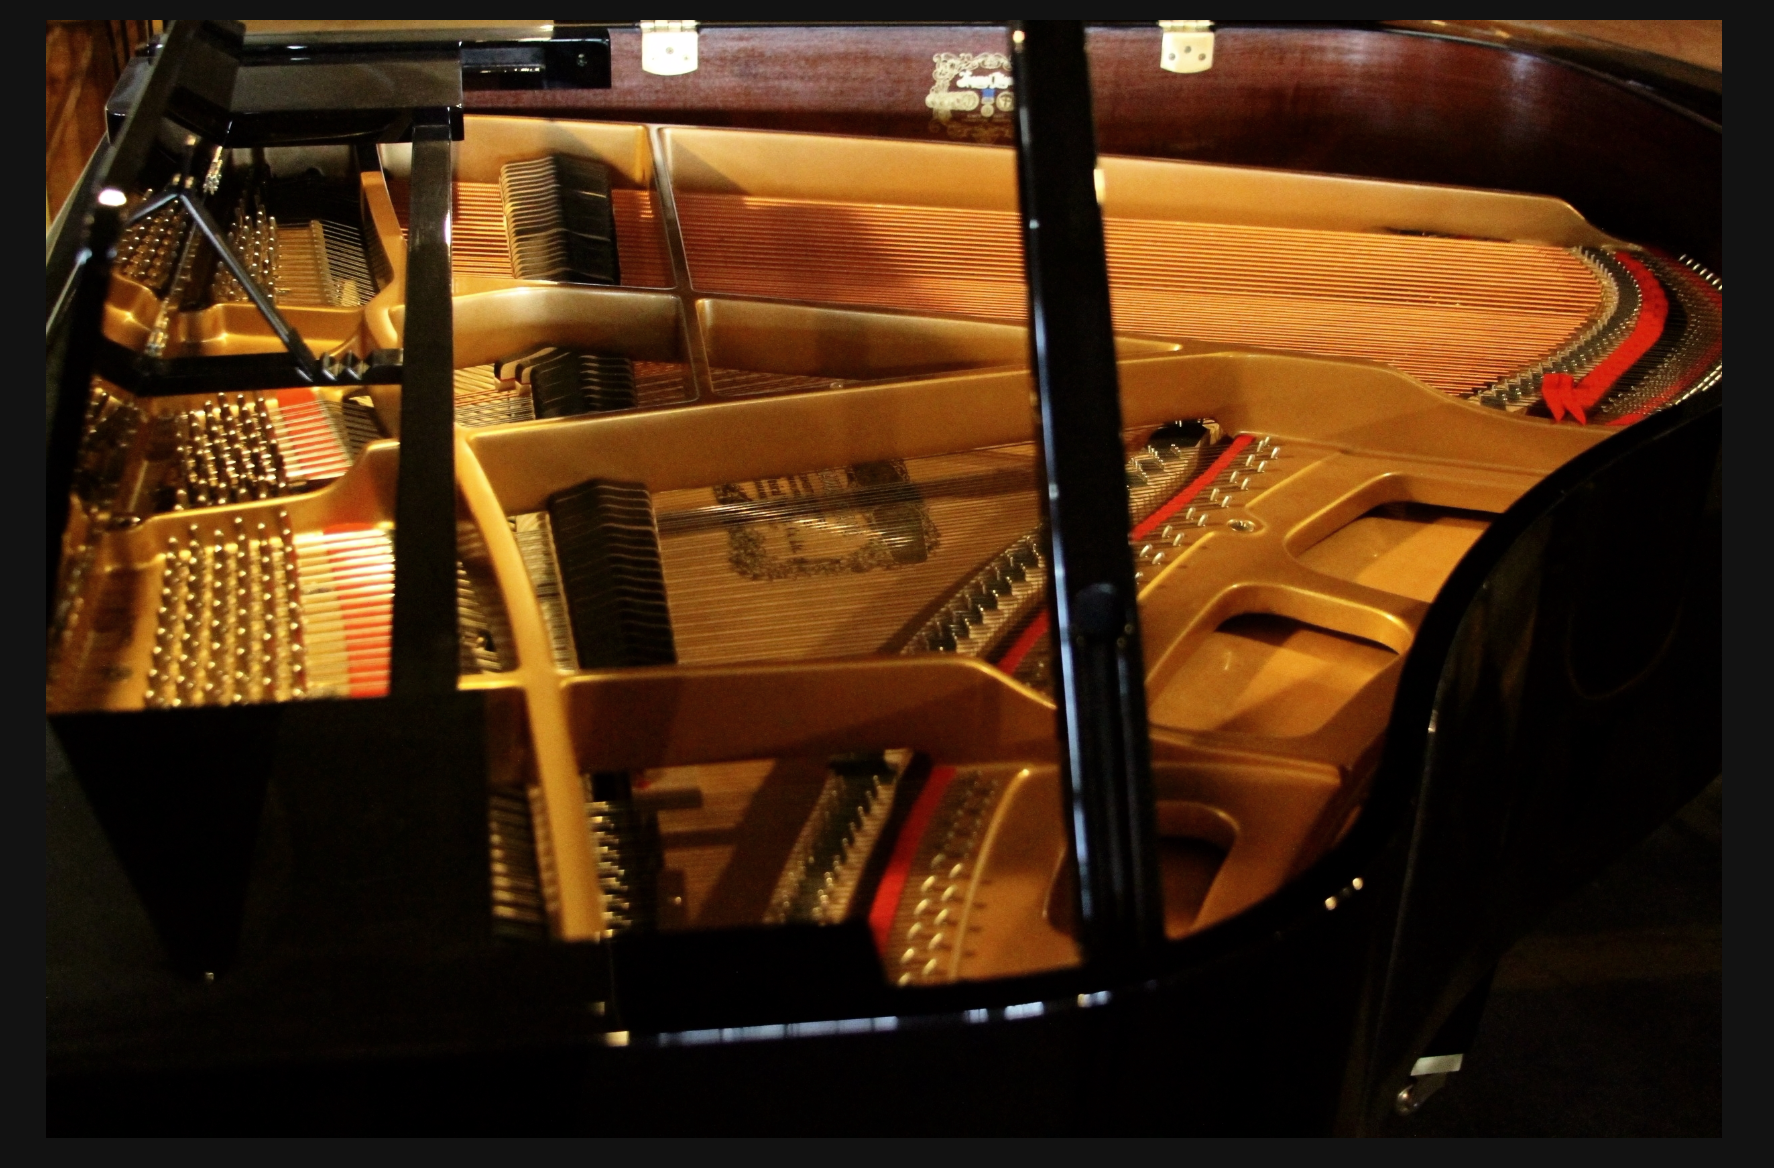 piano stores near me , Small Pianos For Sale , Baby Grand Piano For Sale